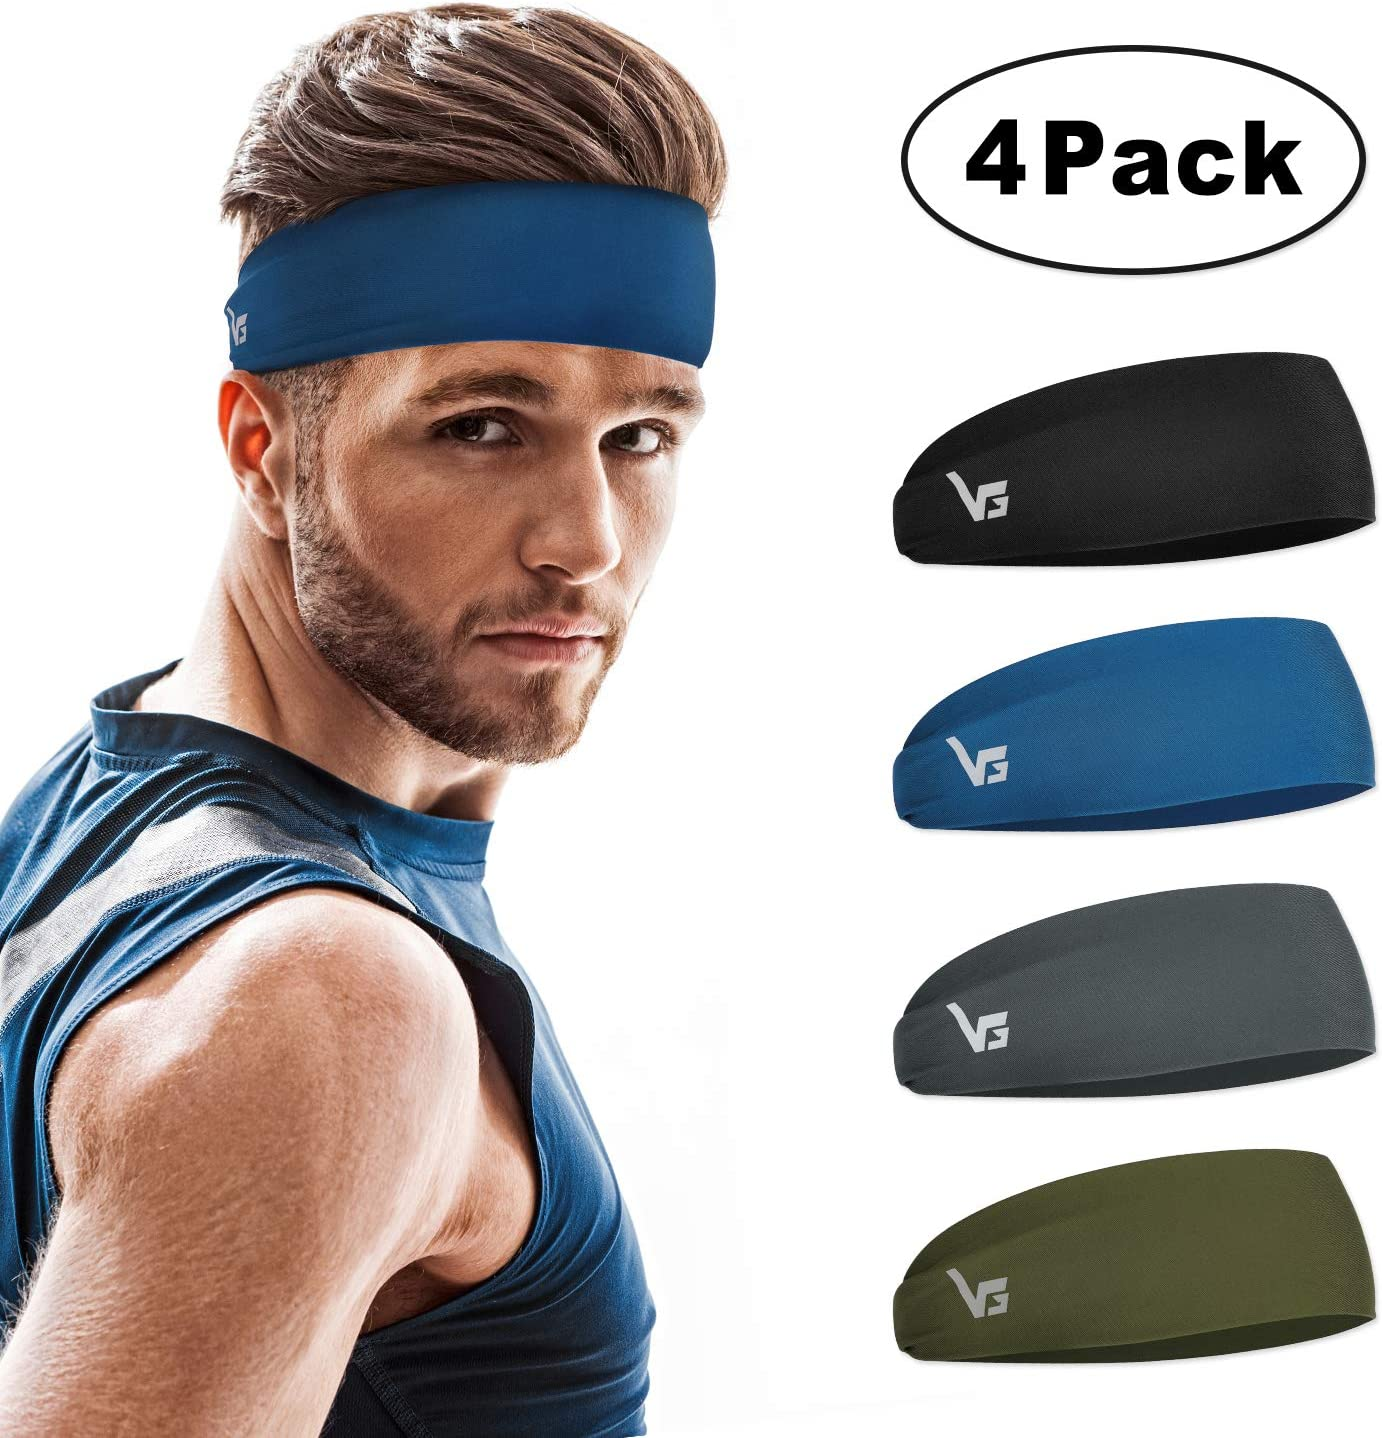 Cycling WILLBOND 6 Pieces Sweatbands Headbands for Men and Women Wicking Stretchy Sports Head Wrap Non Slip Fitness Headband Exercise Head Scarf for Running Yoga 6 Color Basketball and Workout